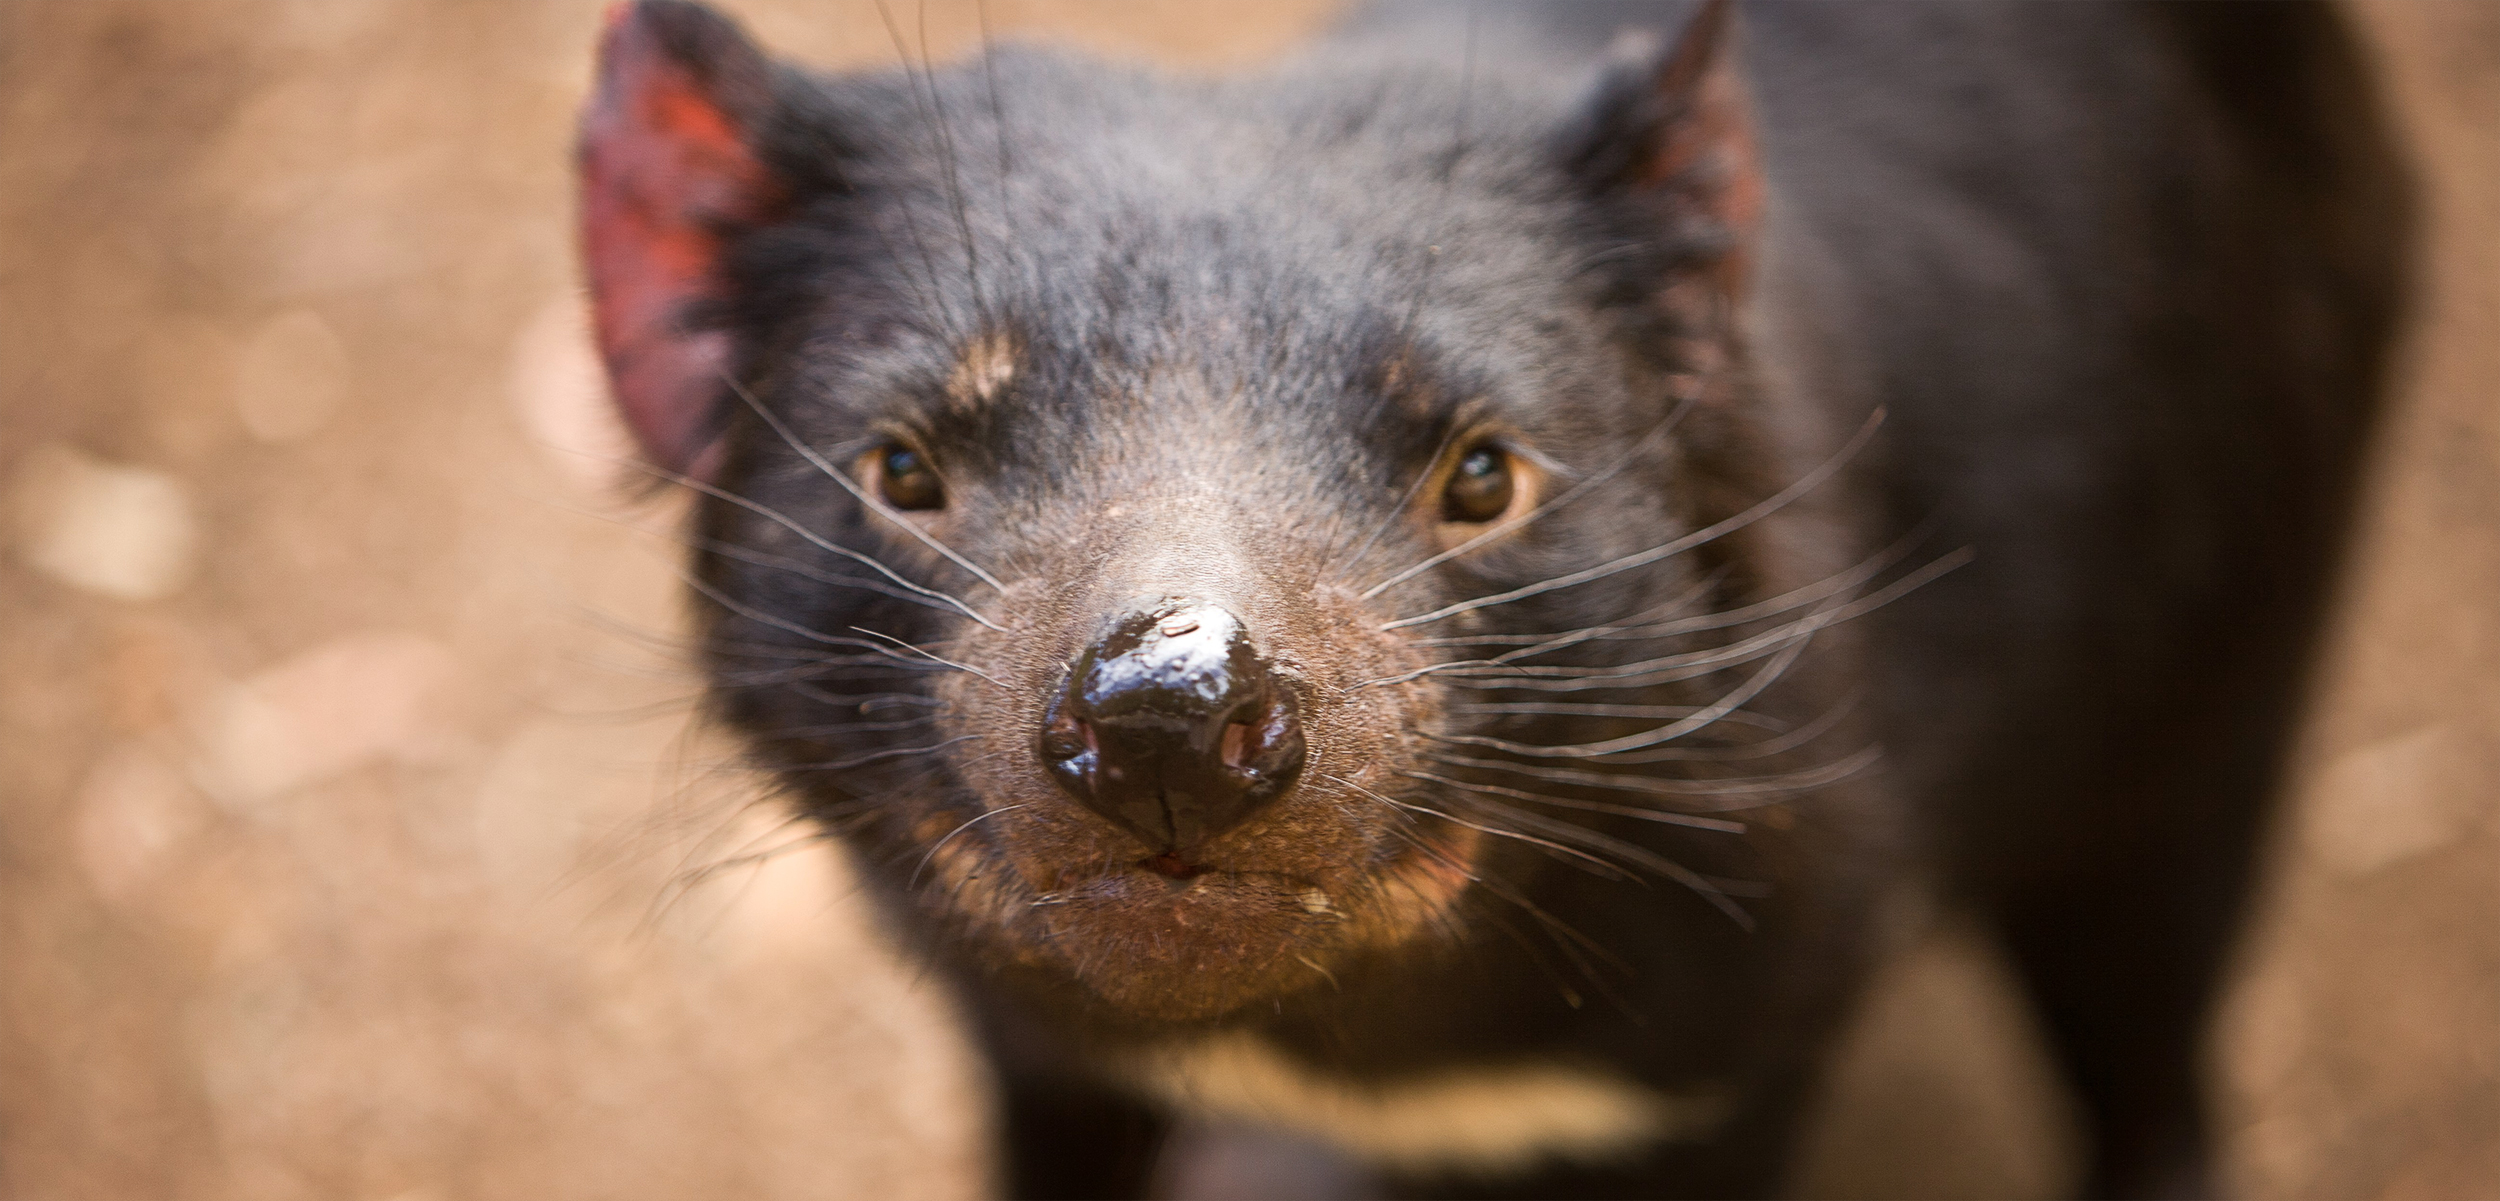 The Tasmanian devil is an icon of its home territory, but disease has ravaged the population. Biologists are rushing to raise devils in captivity and release them in disease-free areas before it's too late. Photo by Jake Warga/Corbis